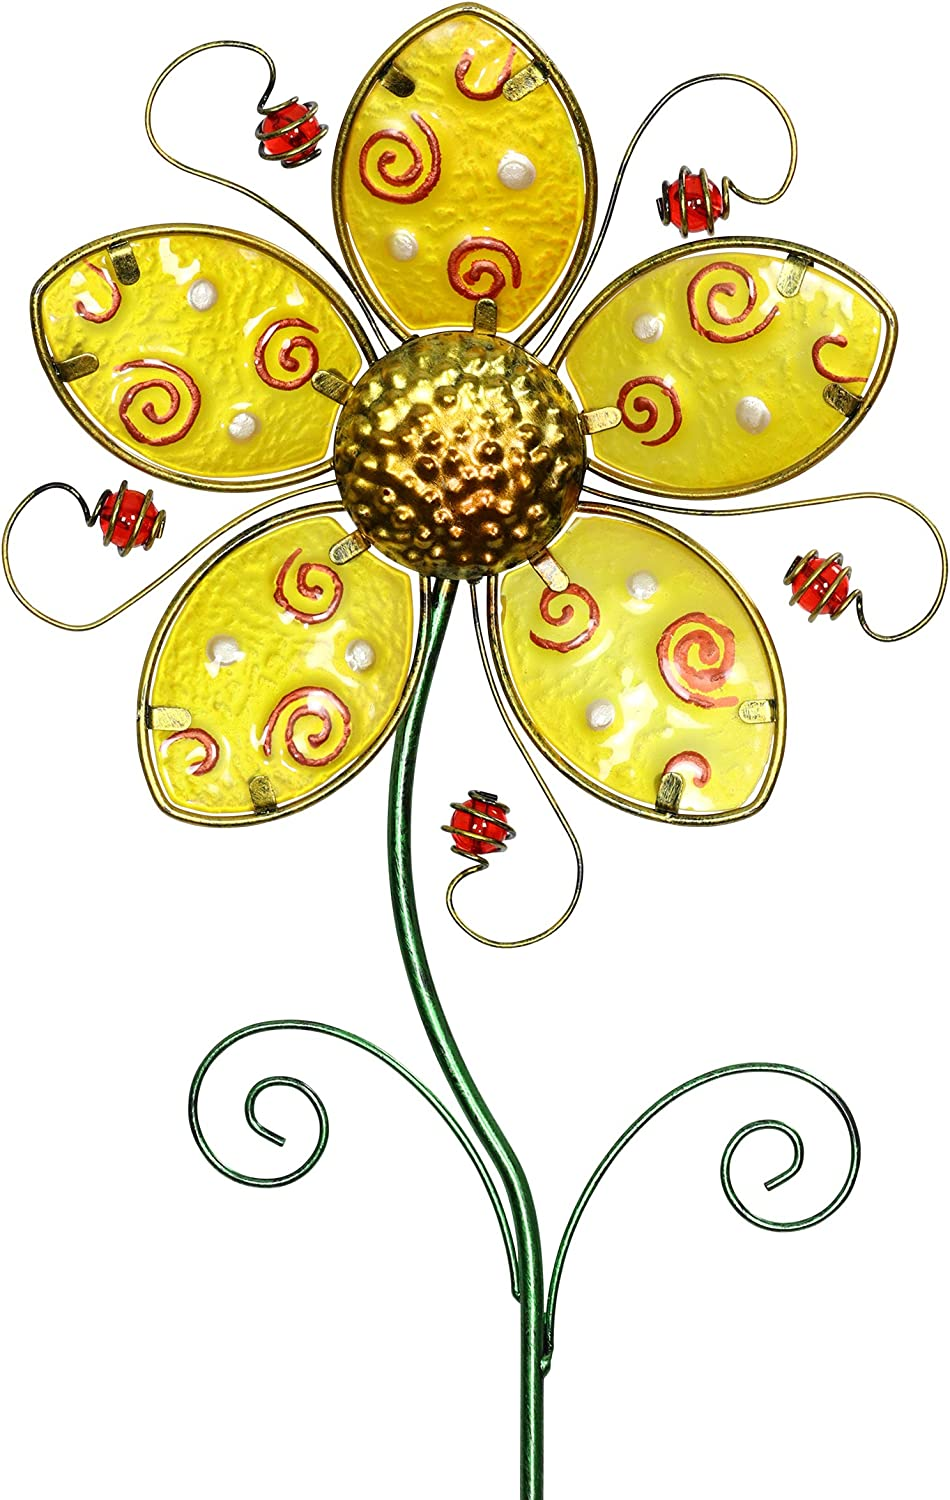 Exhart Whimsical Yellow Flower Garden Stake in Glass & Metal - Yellow Flower Metal Stake Hand-Painted with Fade-Resistant Metallic Coat - Flower Stake Garden Décor, Outdoor Ornament, 11 x 36 Inches